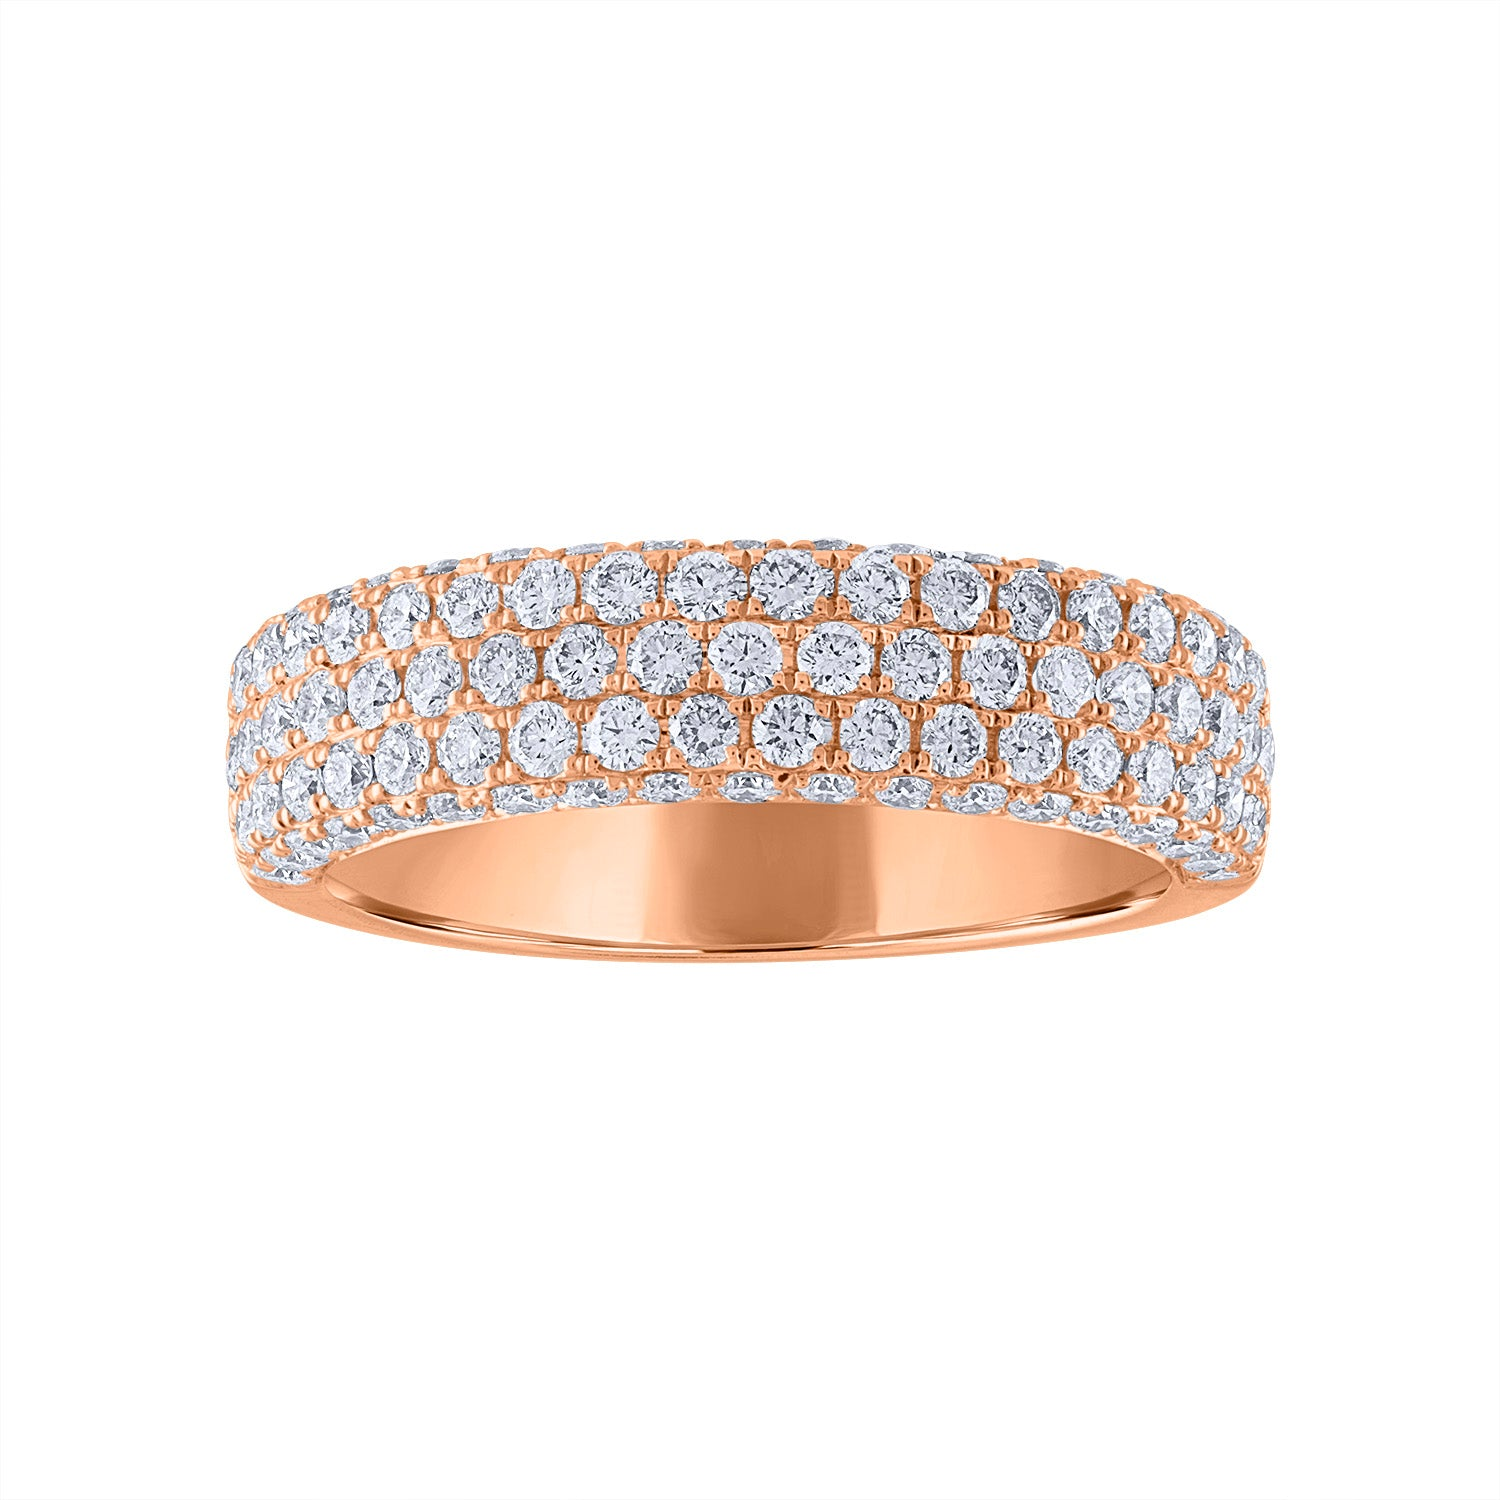 14KT GOLD PAVE DIAMOND THICK RING